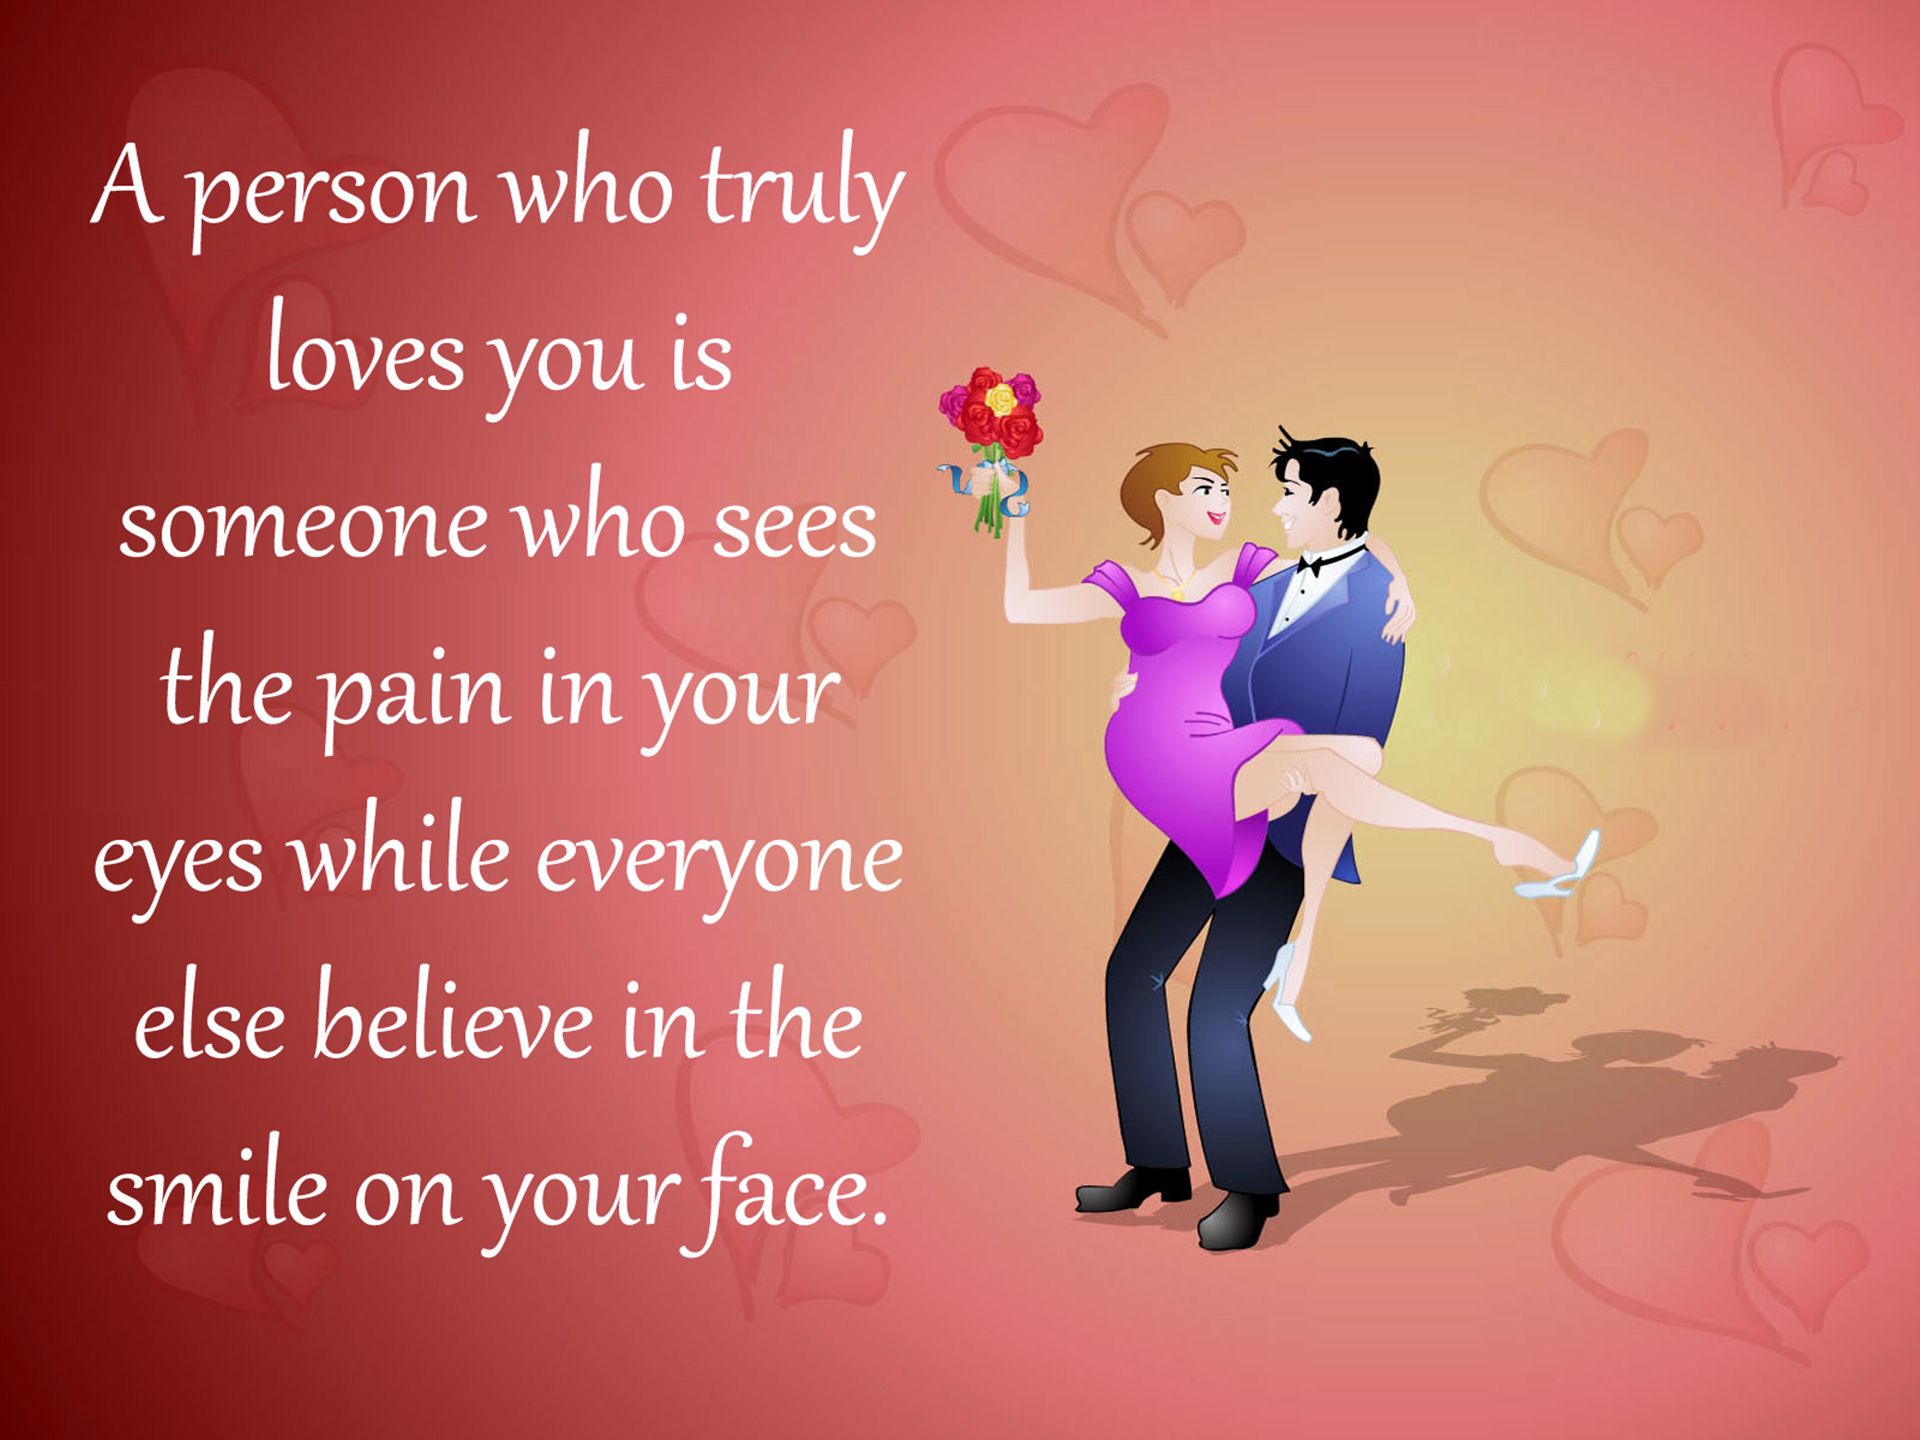 I Love You Quotes For Her 70 Romantic Love Quotes For Her From The Heart